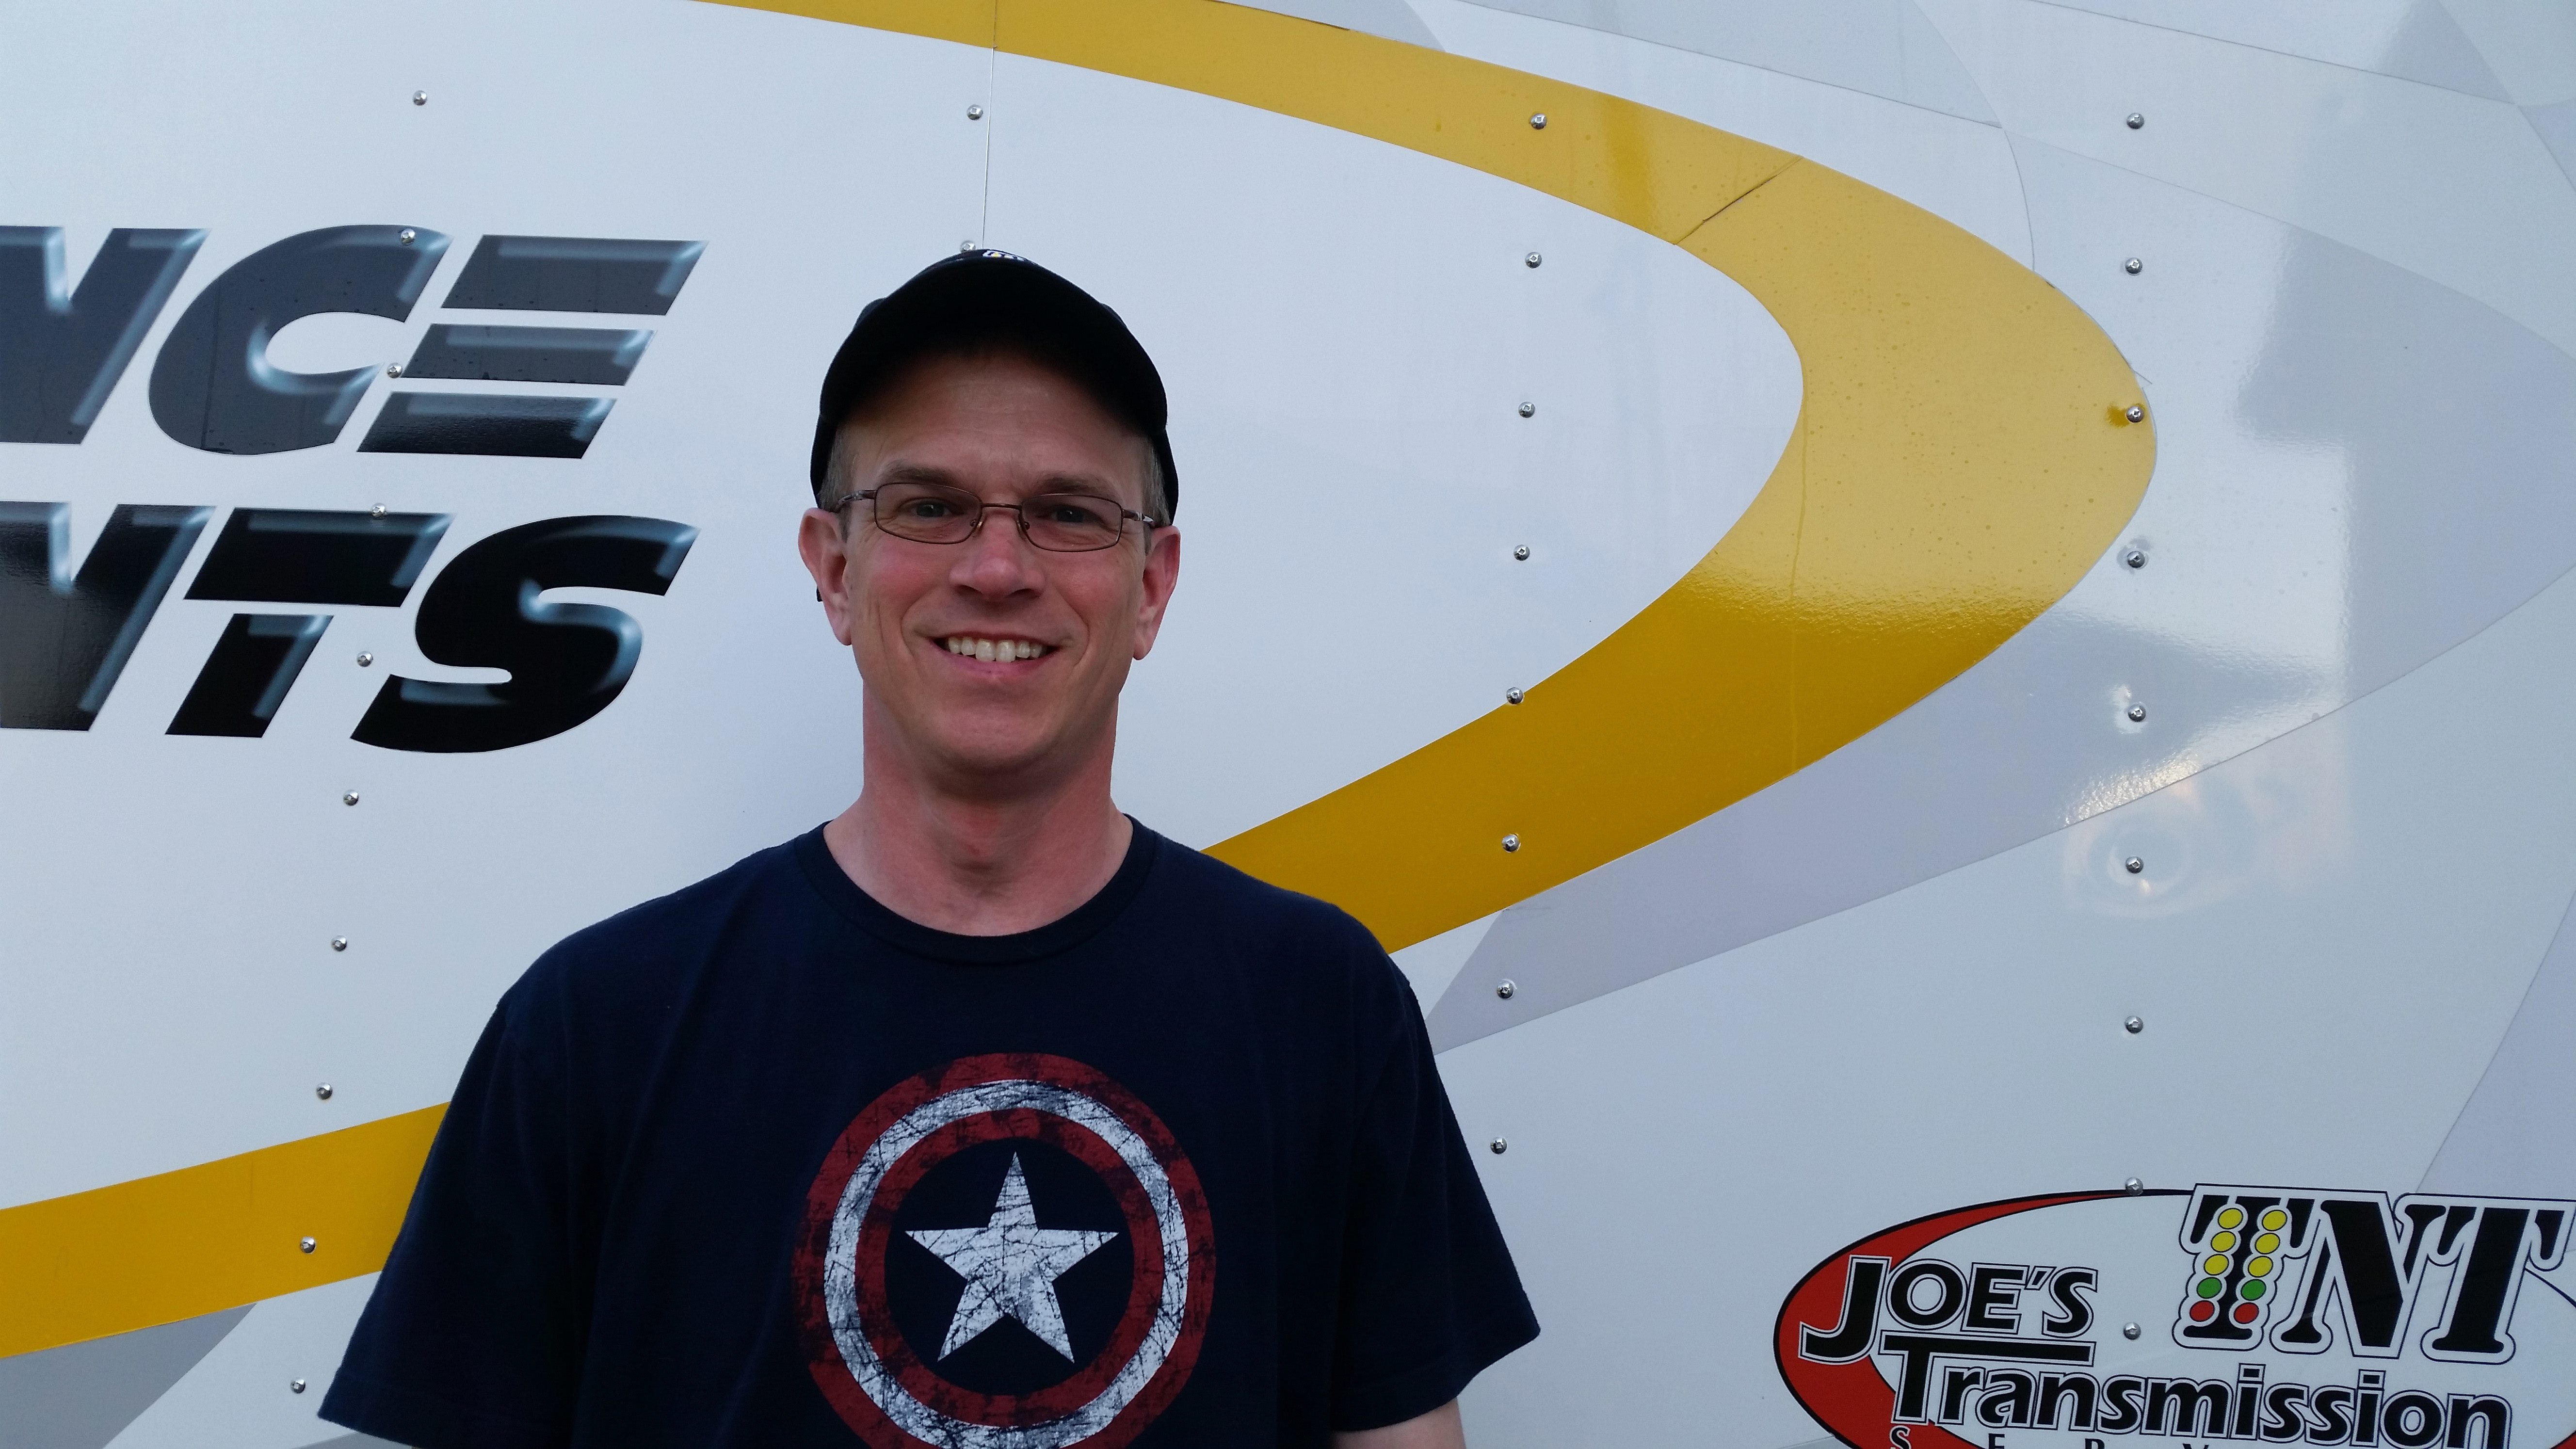 Ted Barnes is the featured driver of the week for the SpeedWeek page.